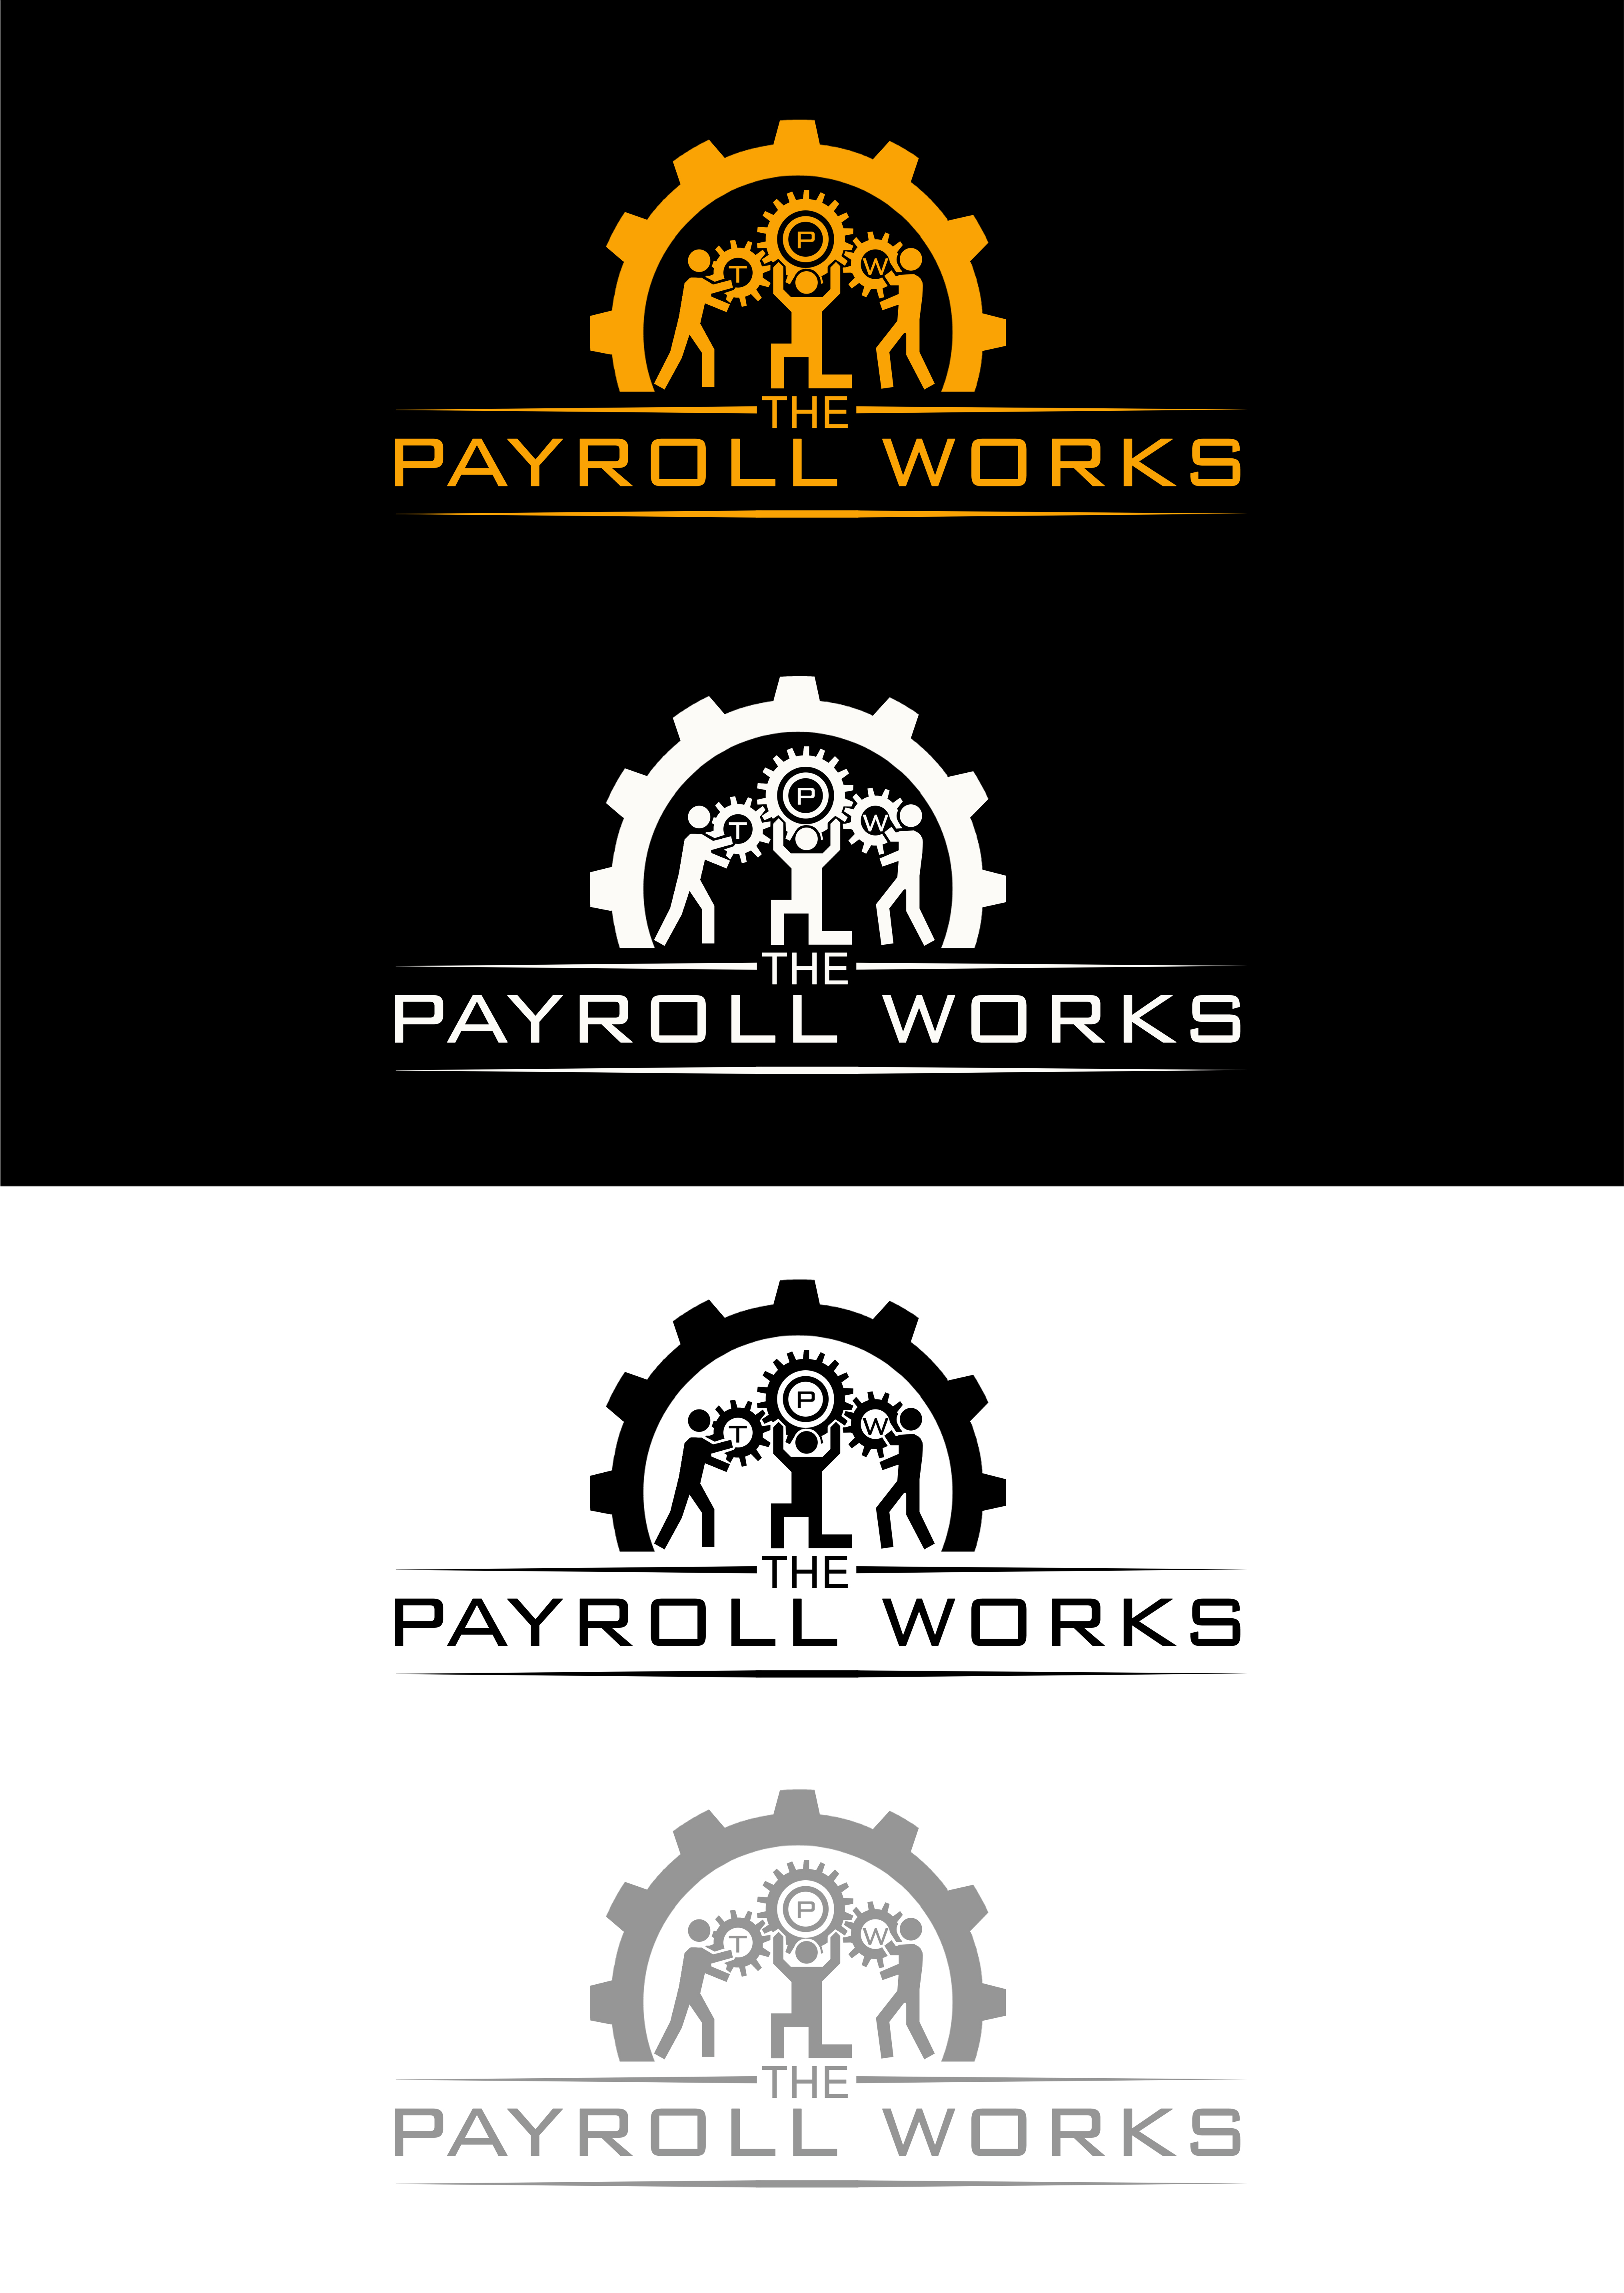 Logo Design by JSDESIGNGROUP - Entry No. 154 in the Logo Design Contest Captivating Logo Design for The Payroll Works.